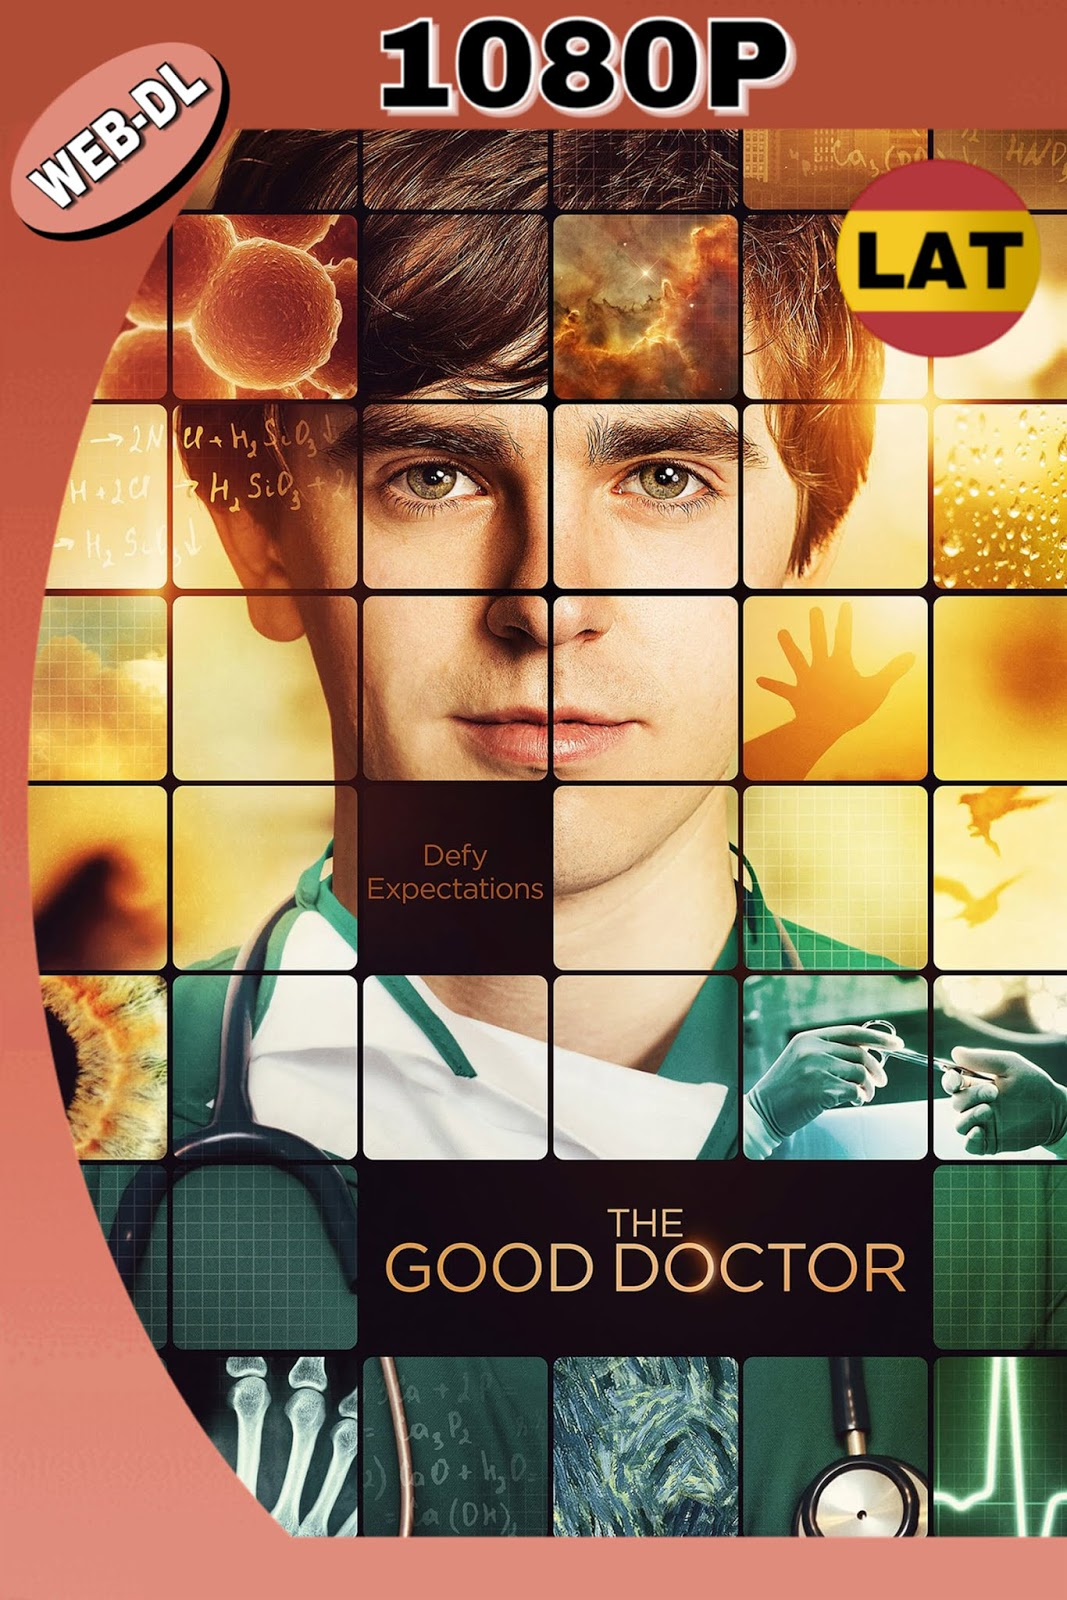 THE GOOD DOCTOR 2017 TEMPORADA 1 AMZN WEBDL 1080P 12GB.mkv